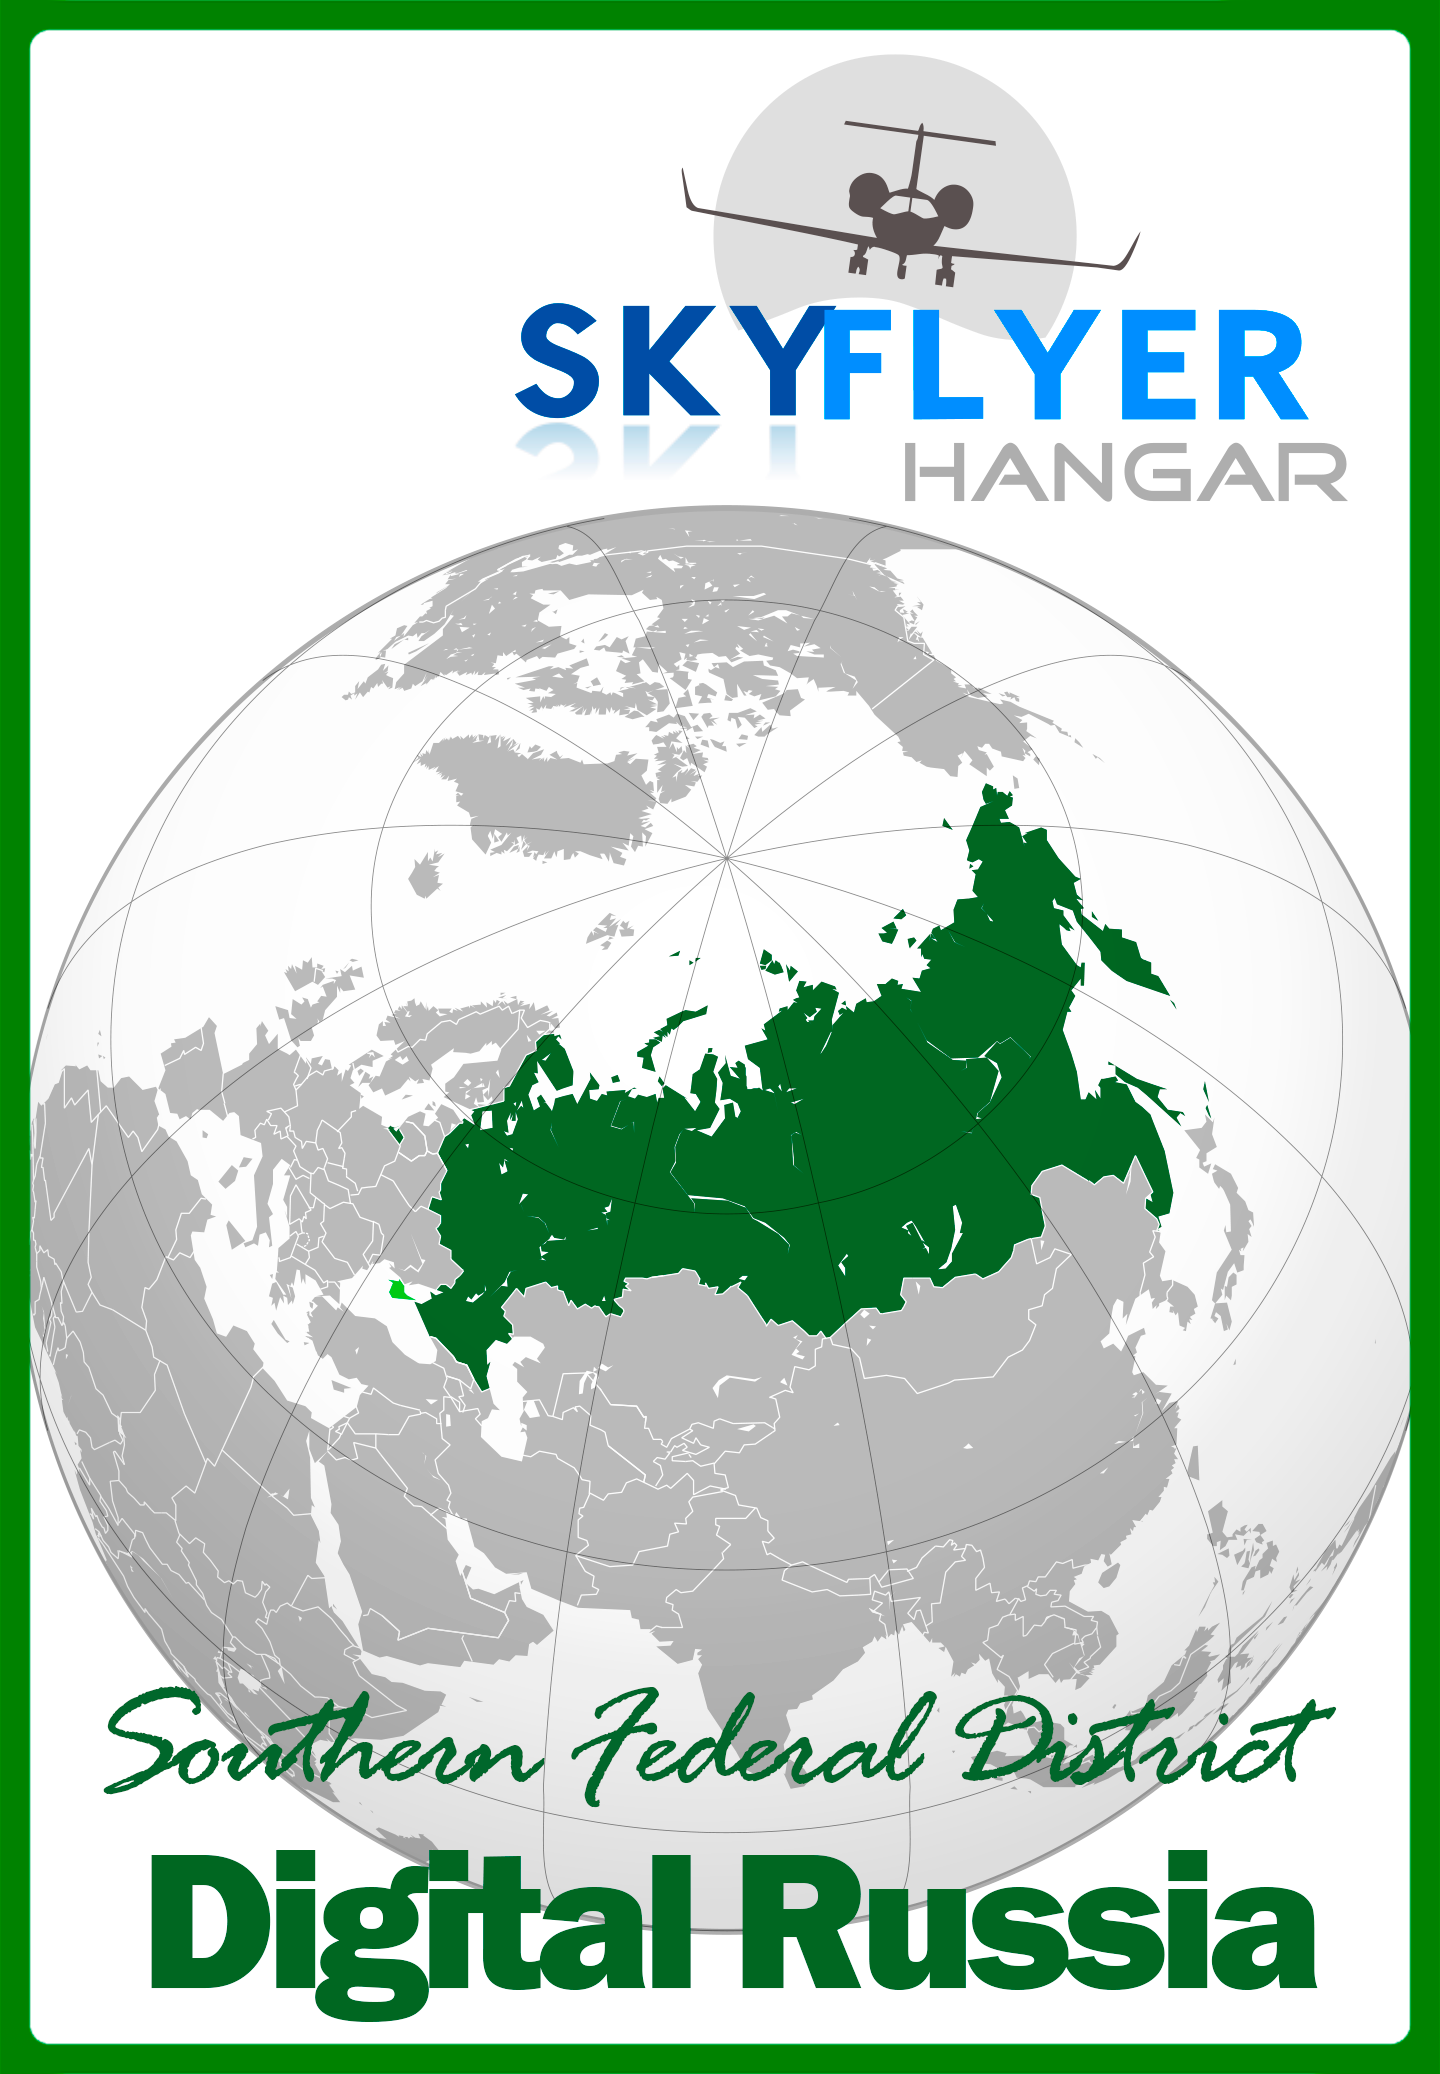 SKY FLYER HANGAR - DIGITAL RUSSIA SOUTHERN FEDERAL DISTRICT P3D